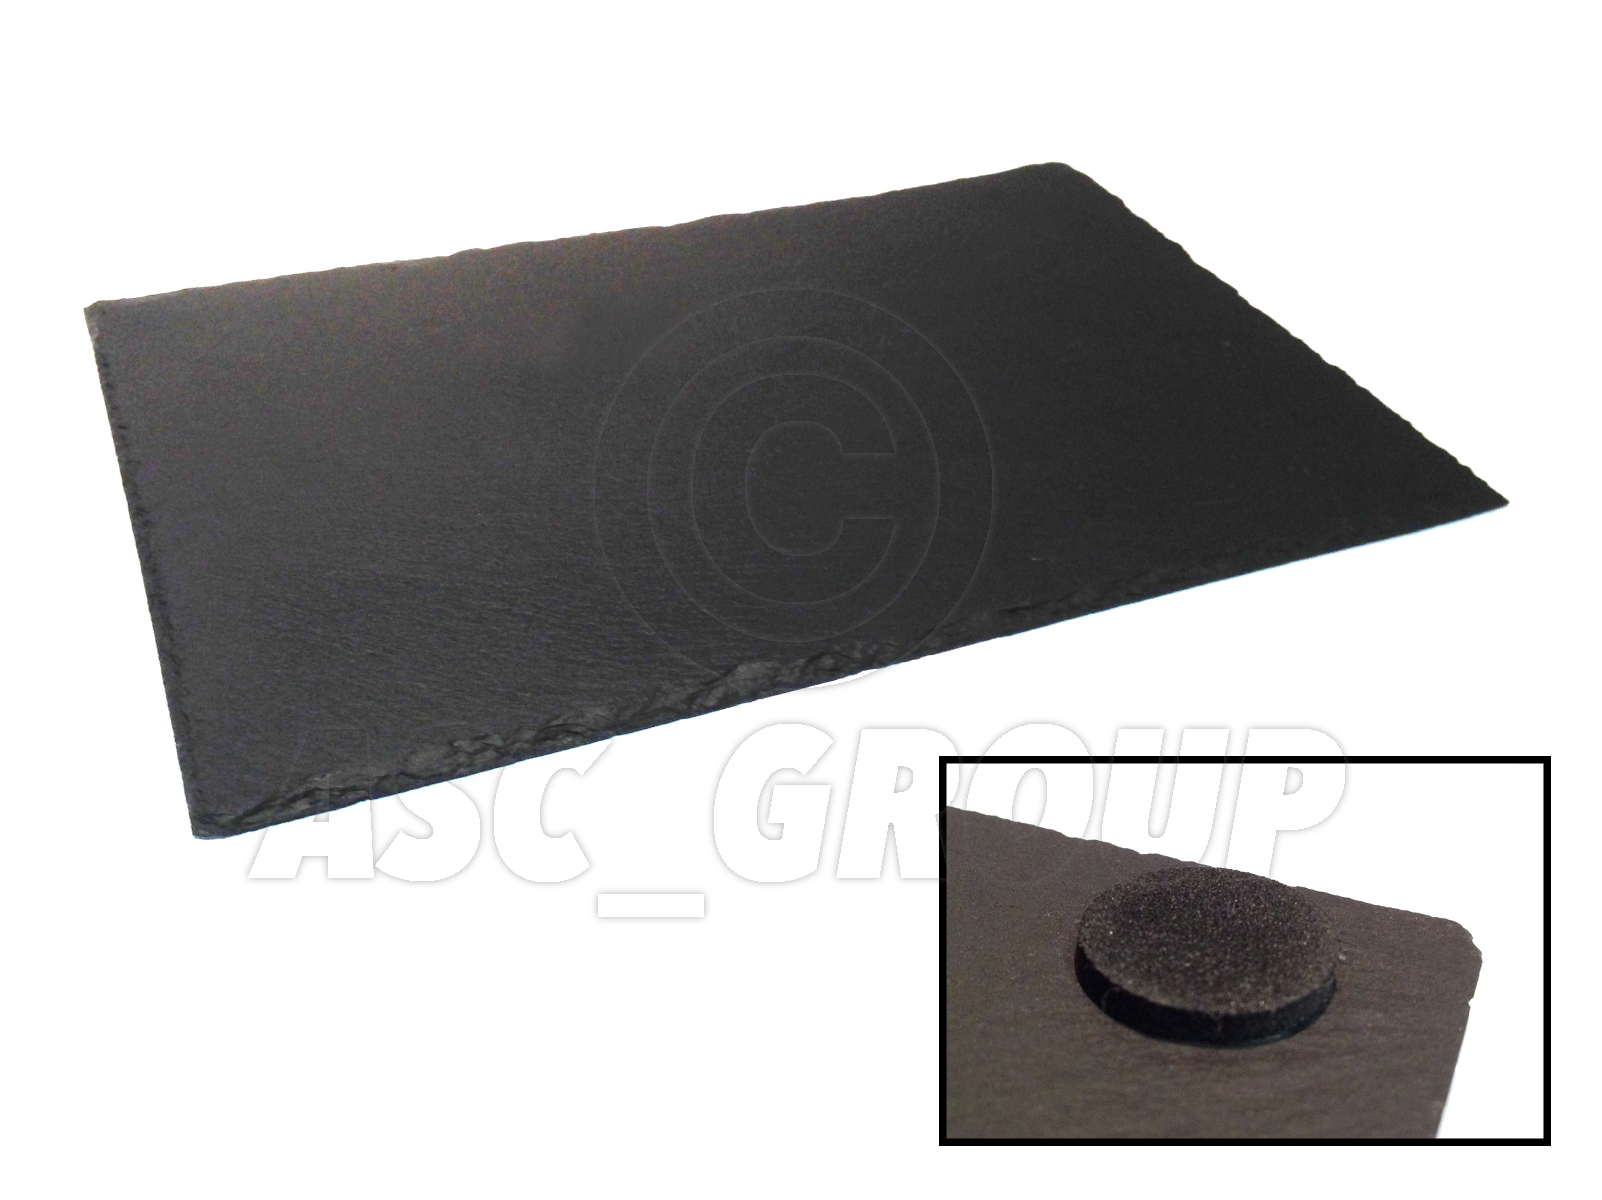 6x Rectangle Slate Place Table Mats Rustic Design Natural